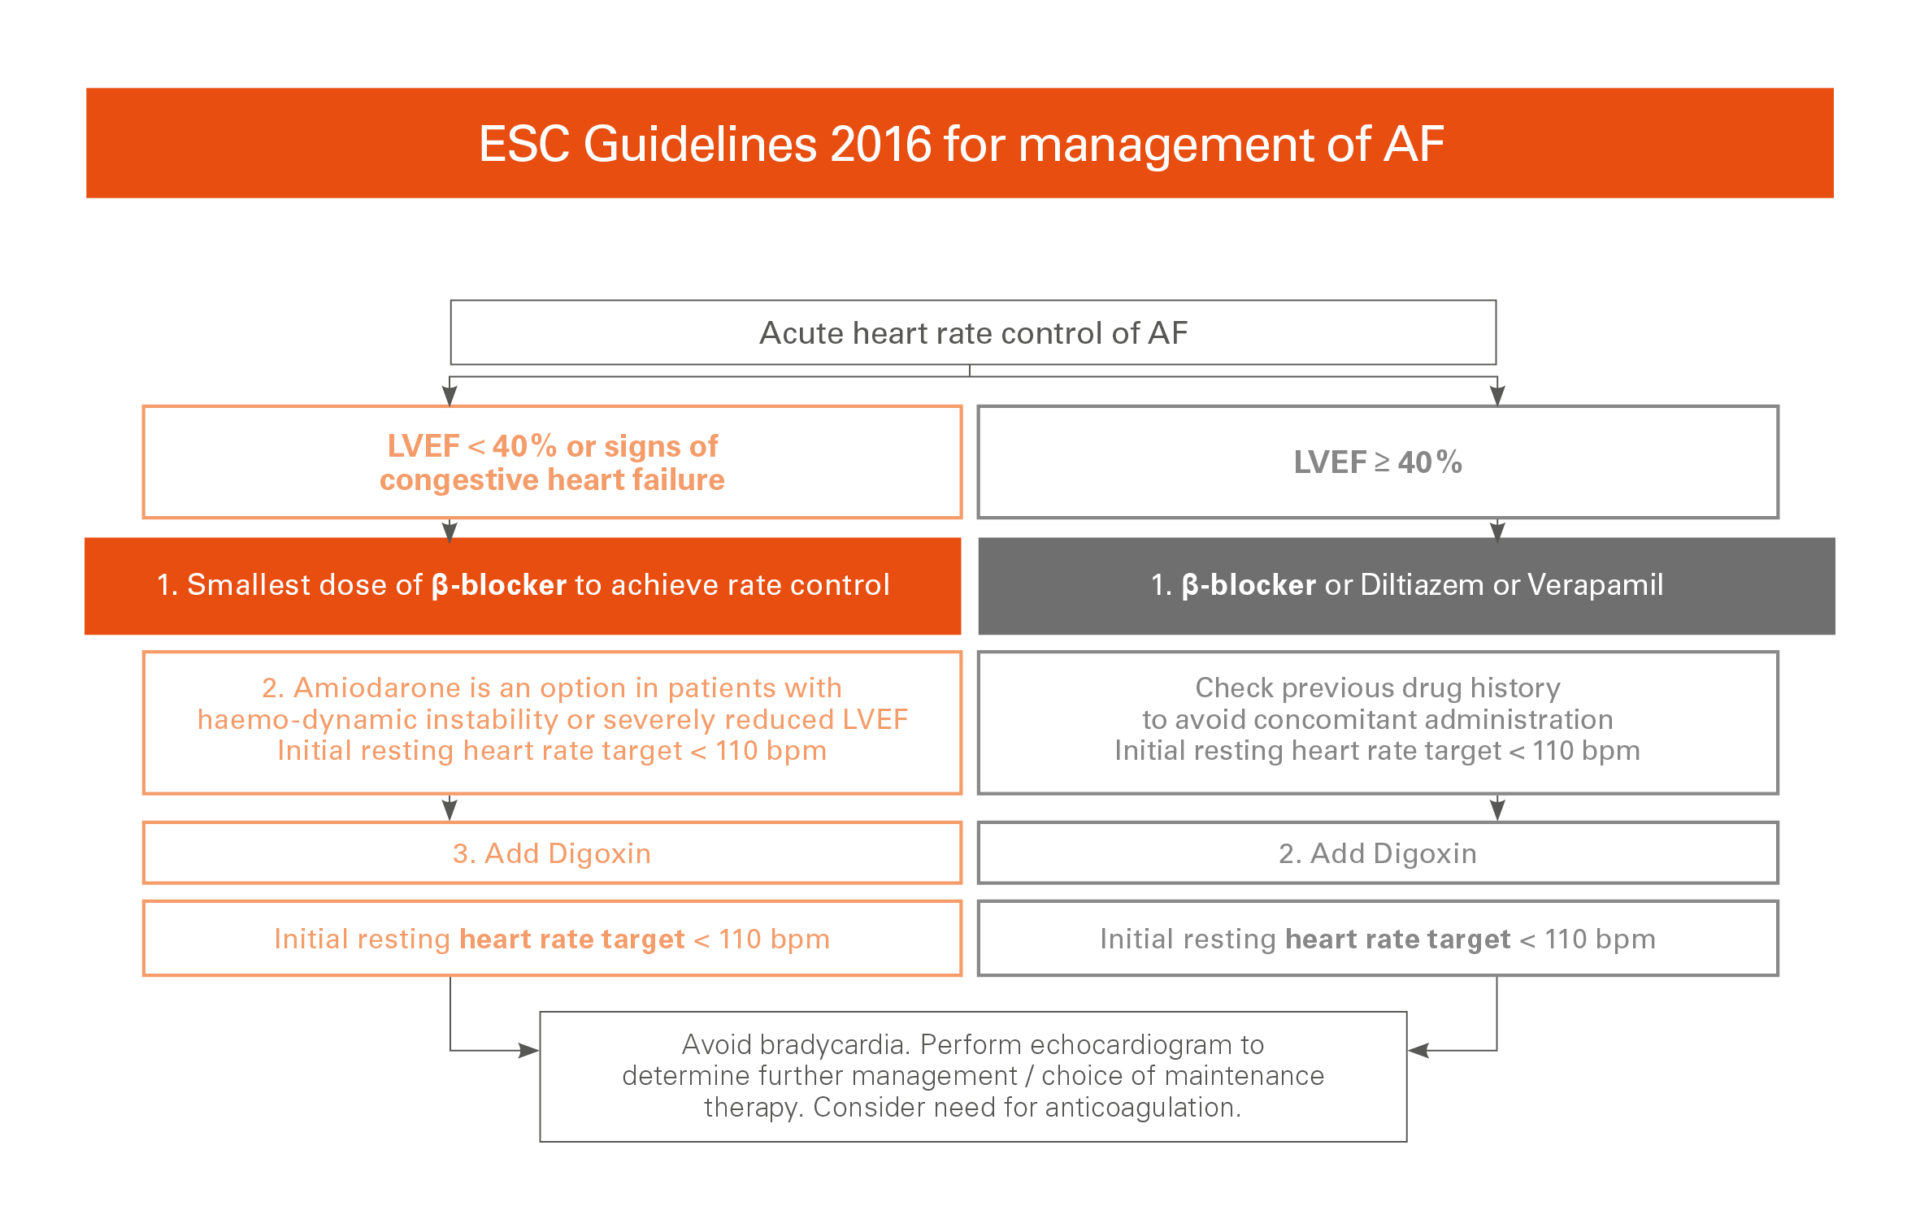 ESC Guidelines 2016 for management of AF